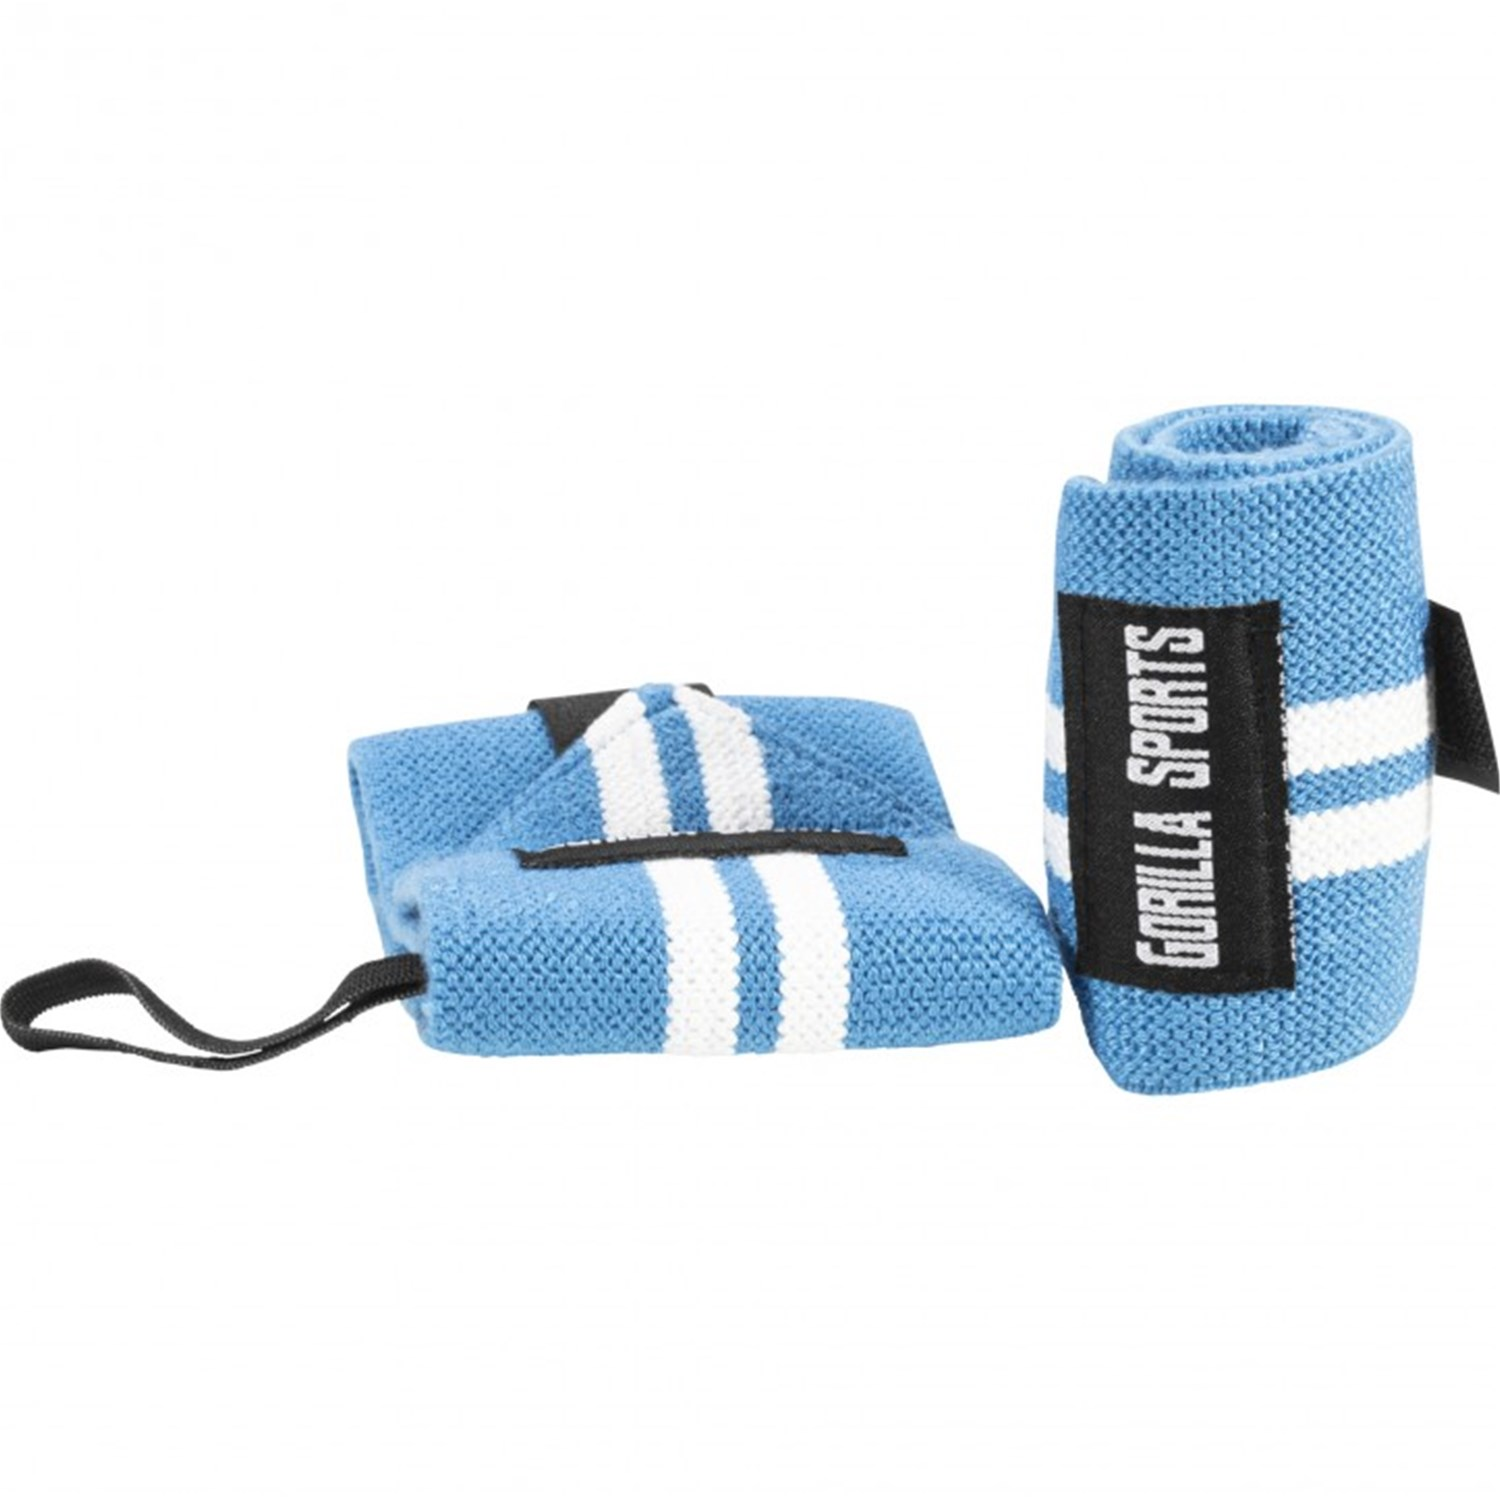 Gorilla Sports Wrist-Wraps - 7